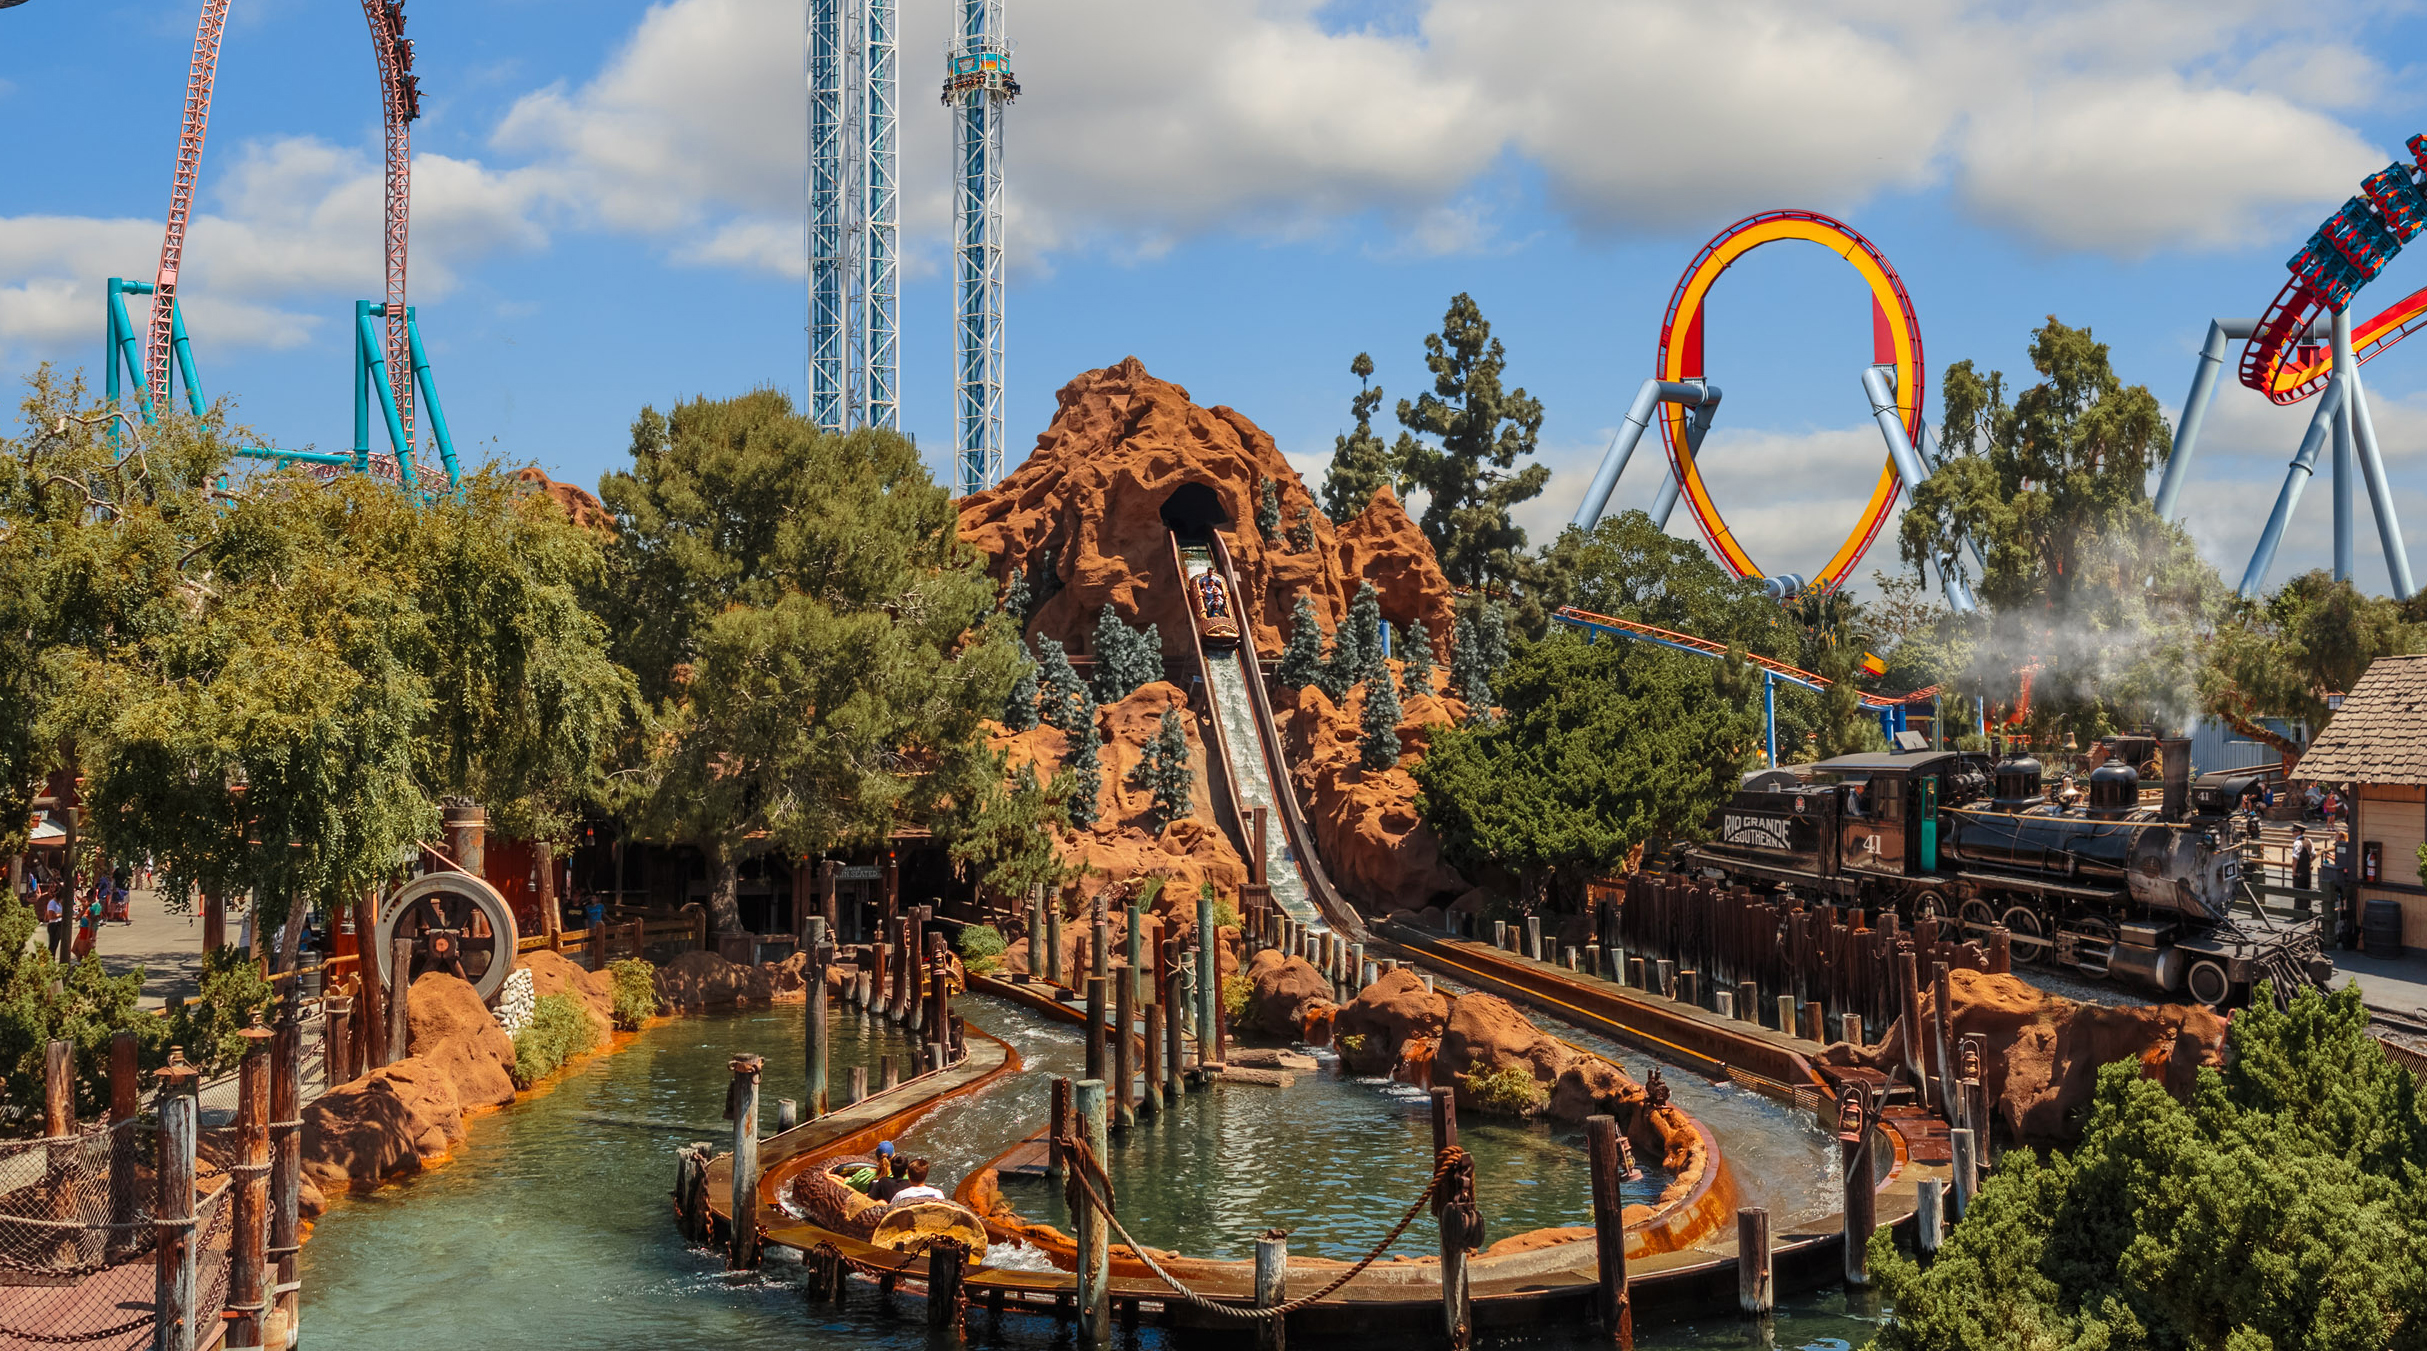 These log flume rides make quite a splash